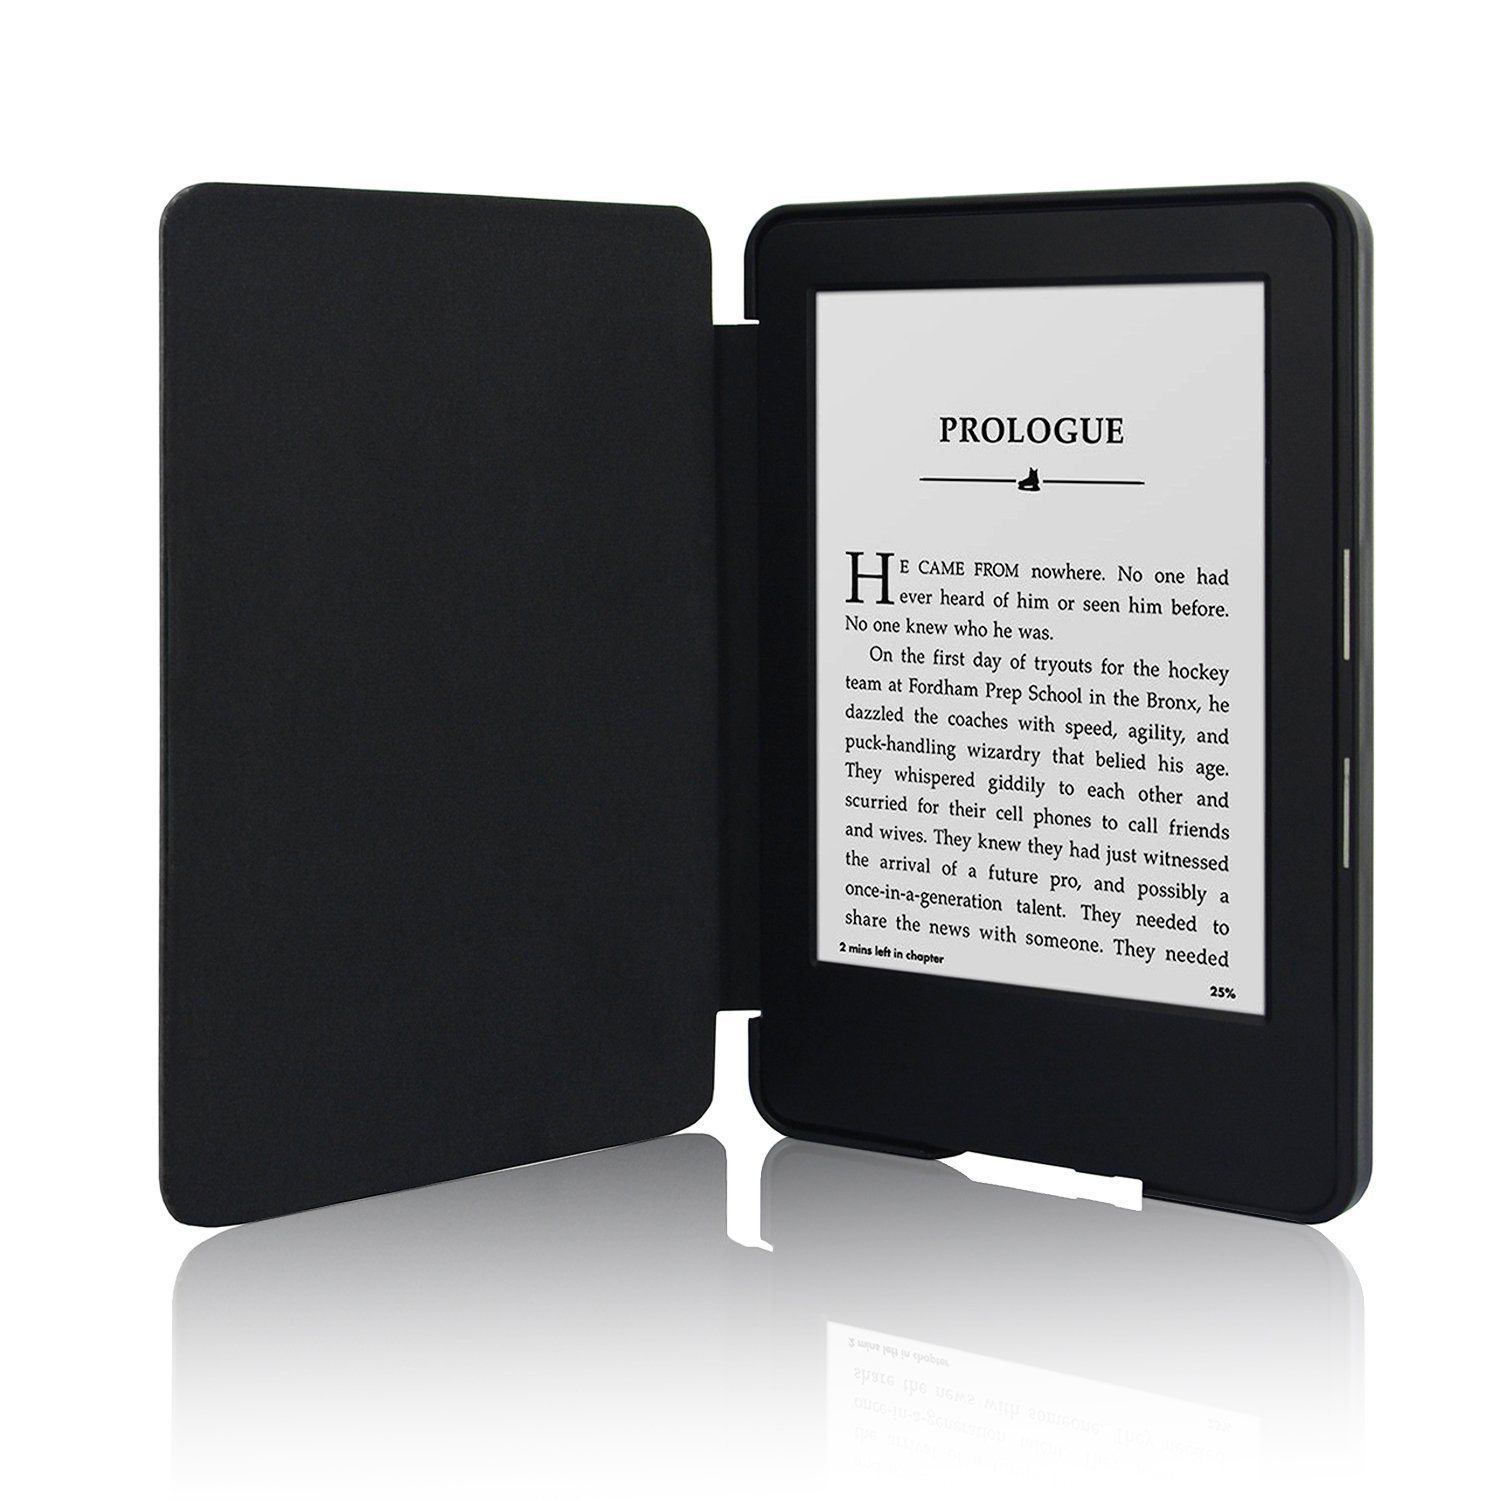 Mabely The Thinnest and Lightest Leather for Protective Cover for Kindle (7th Generation 2014 Model) with Auto Sleep/ Wake Feature(Black)